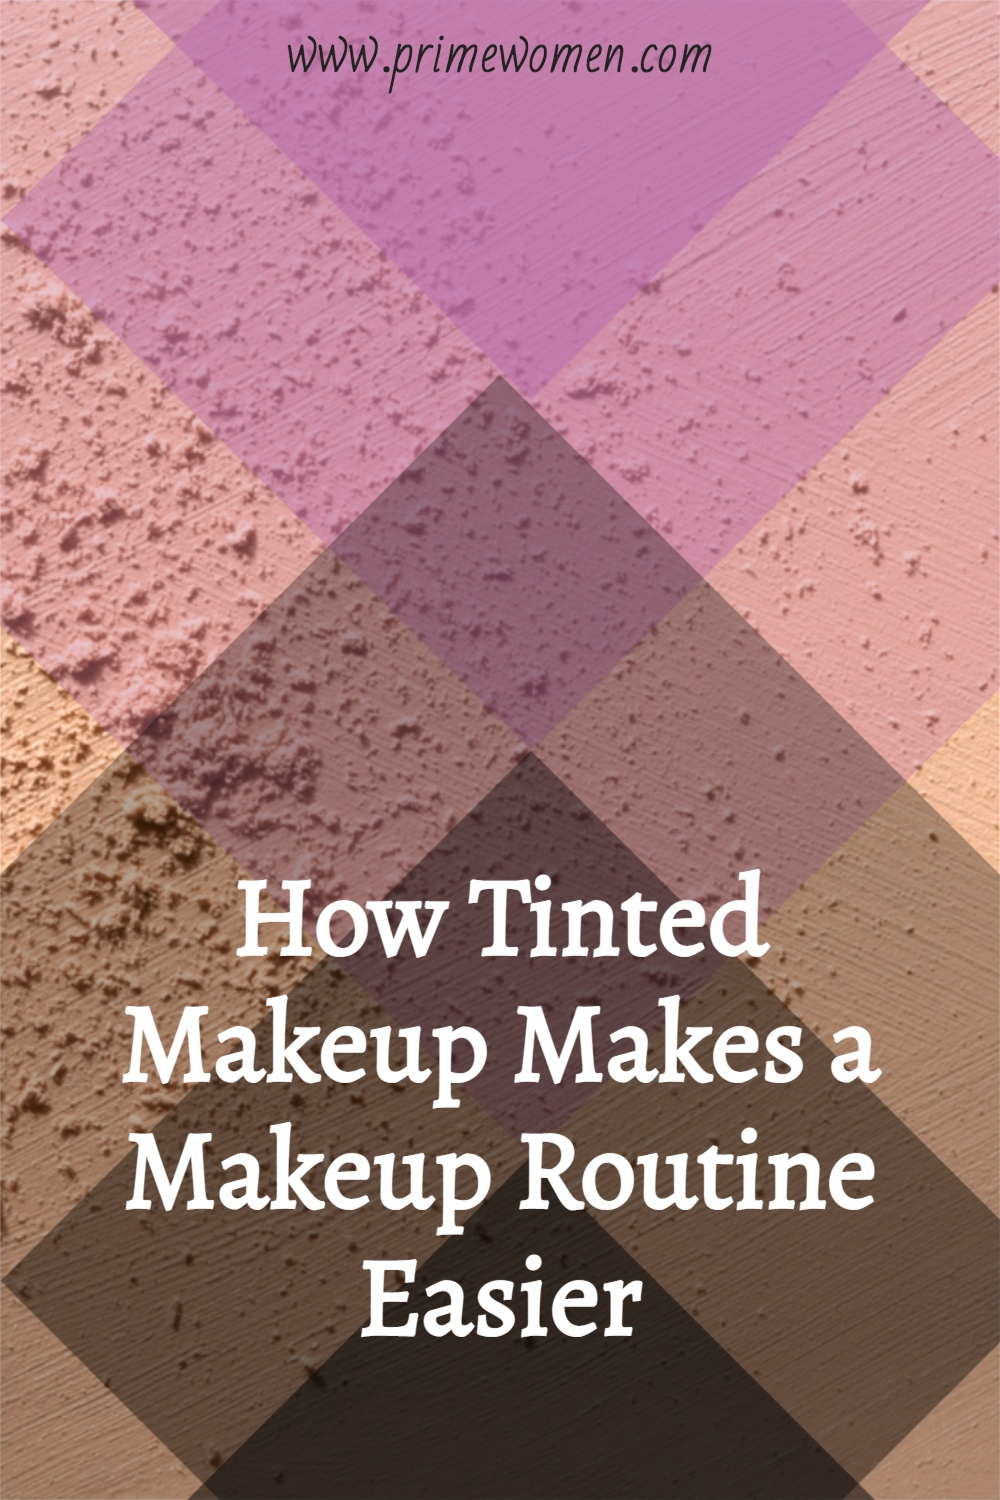 How-Tinted-Makeup-Makes-a-Makeup-Routine-Easier